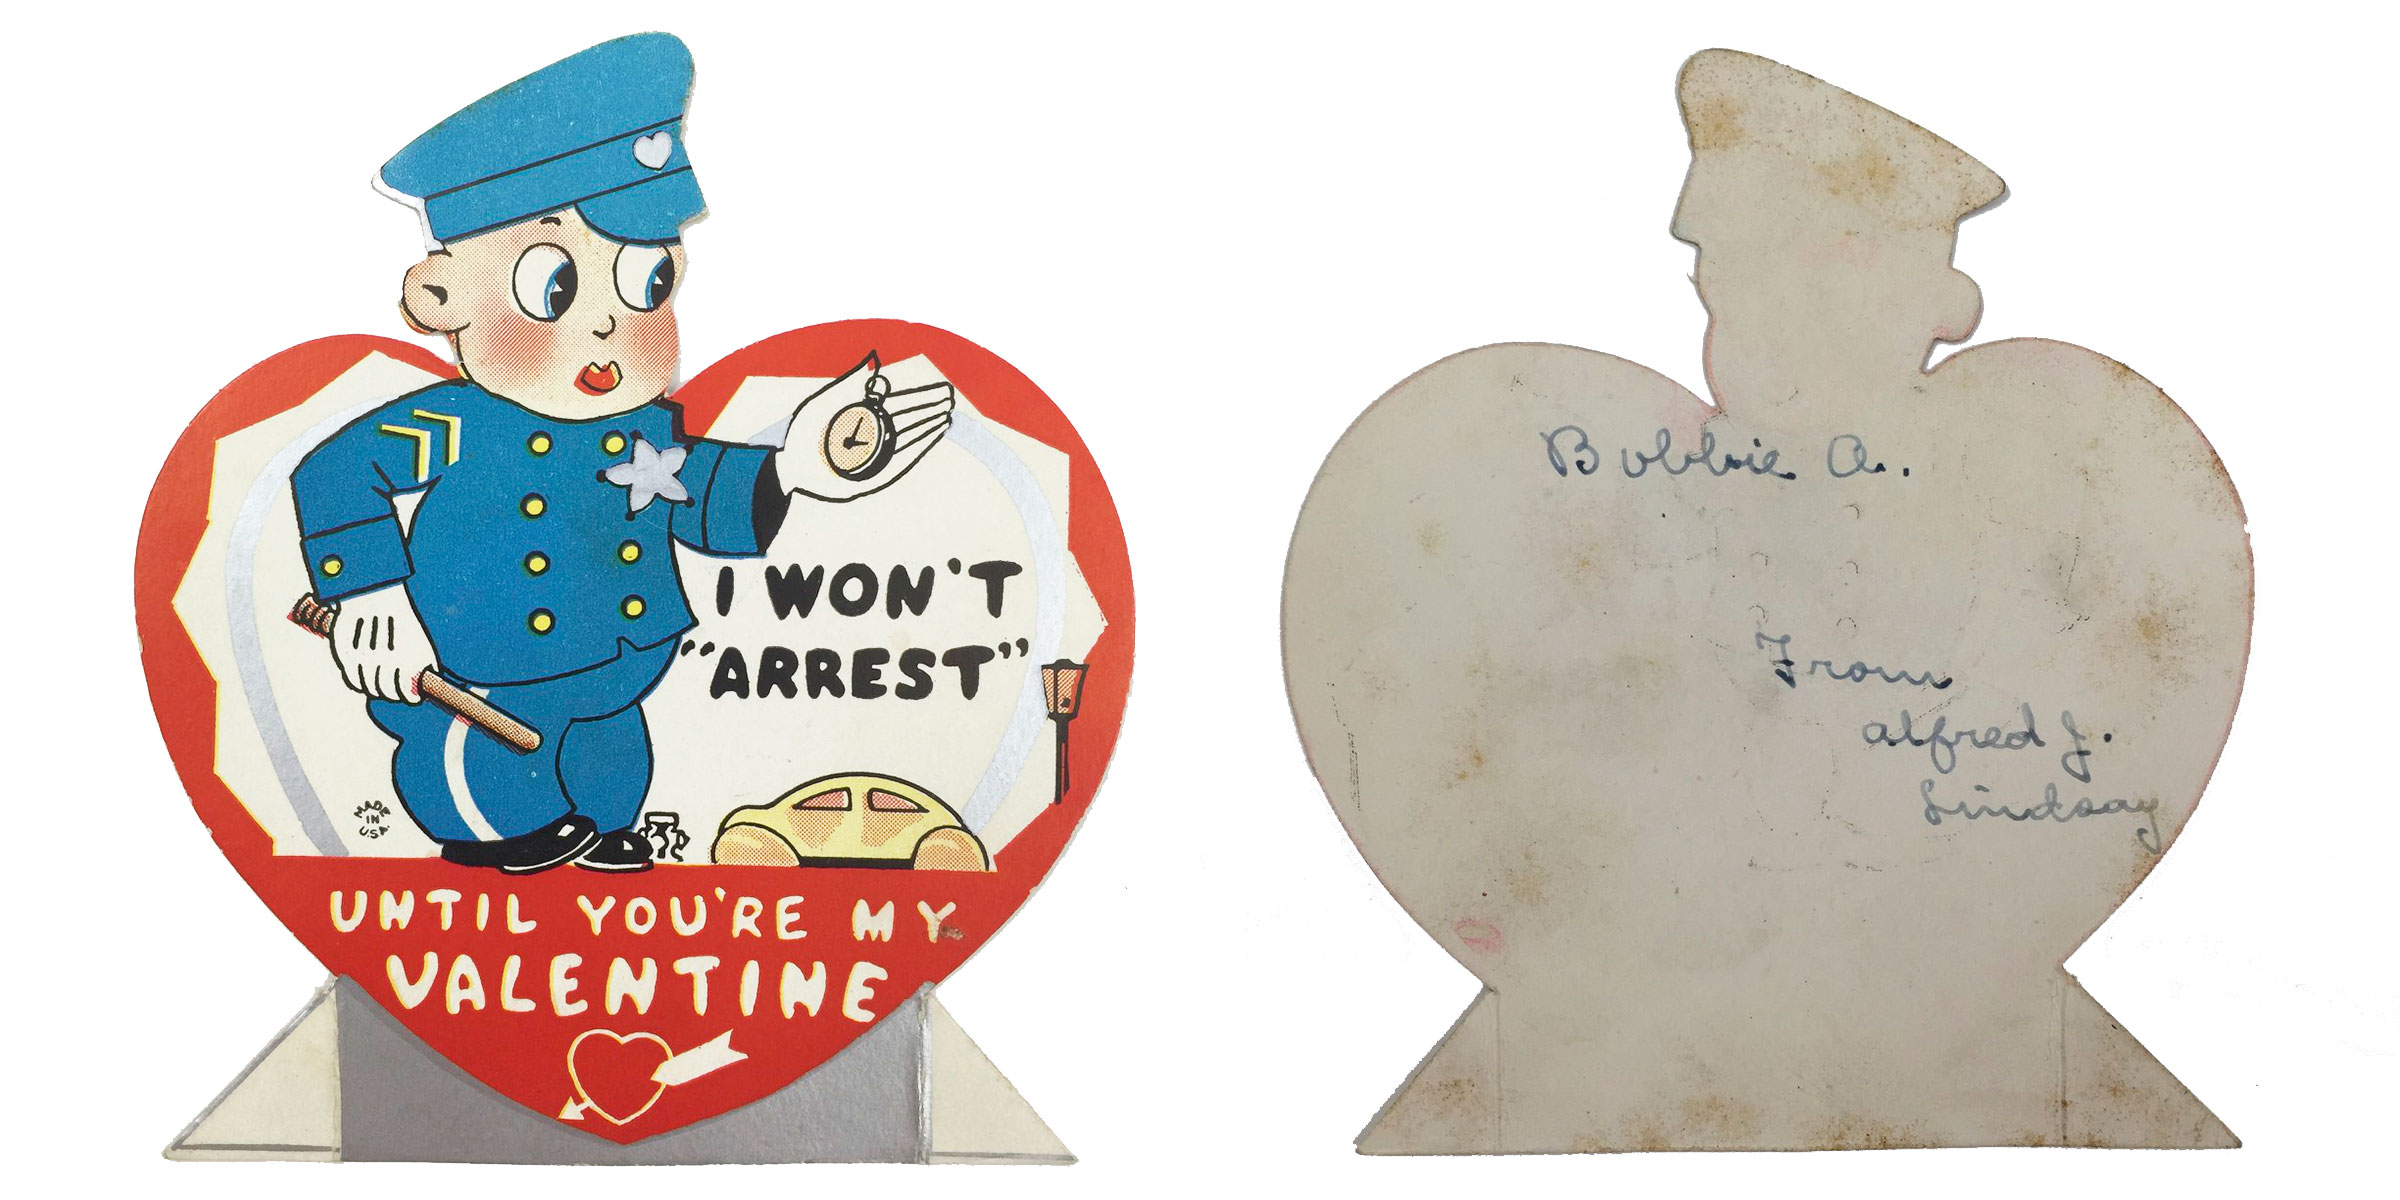 1930s Valentine. I Won't Arrest Until You're My Valentine